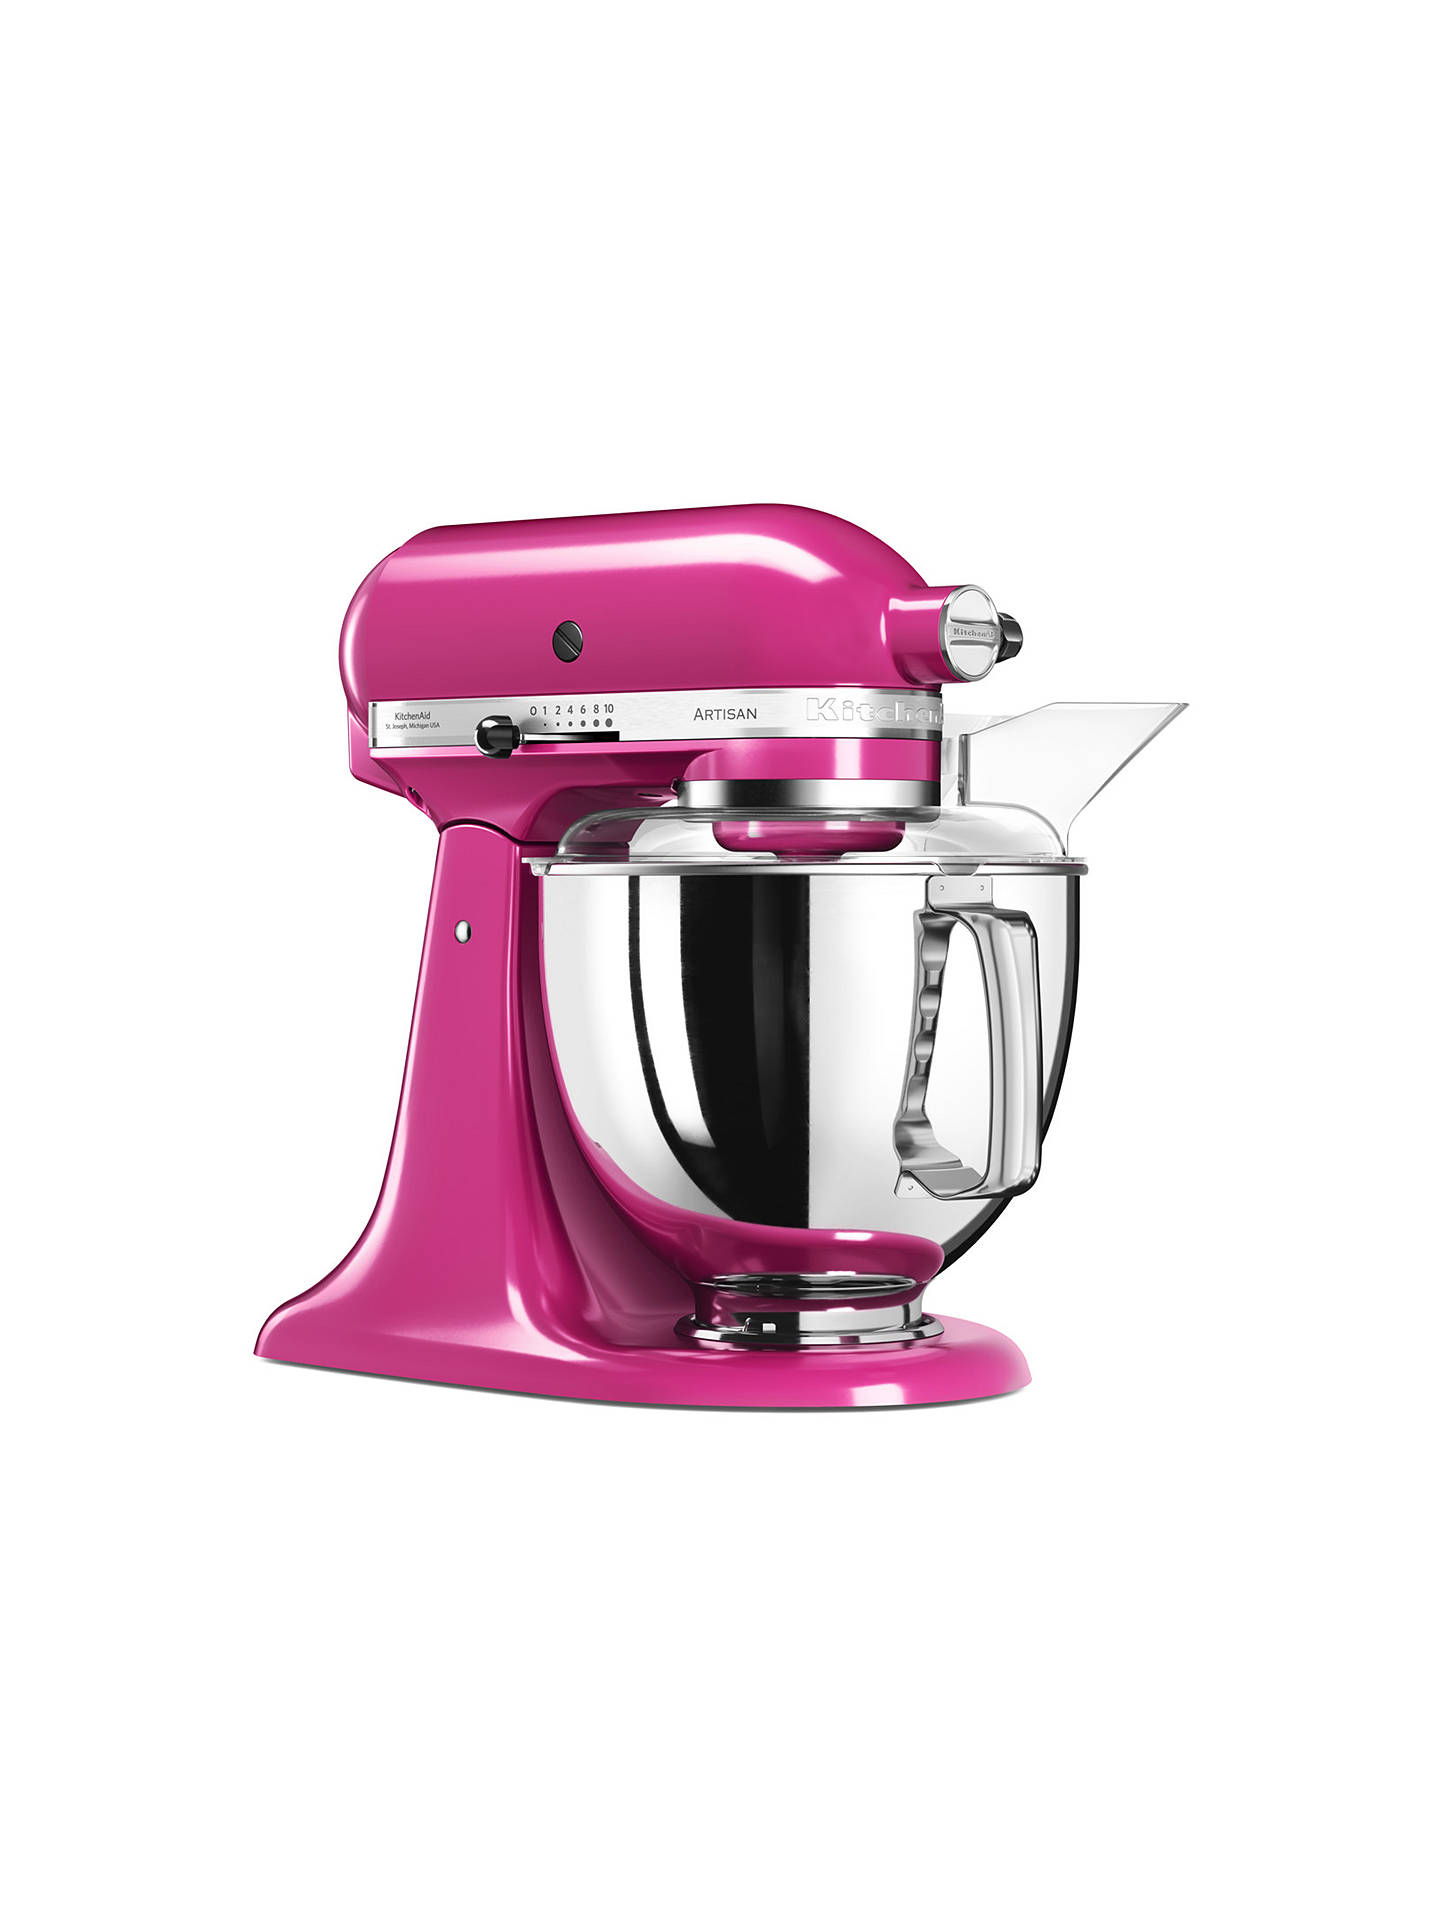 Buy KitchenAid 175 Artisan 4.8L Stand Mixer, Cranberry Online at johnlewis.com